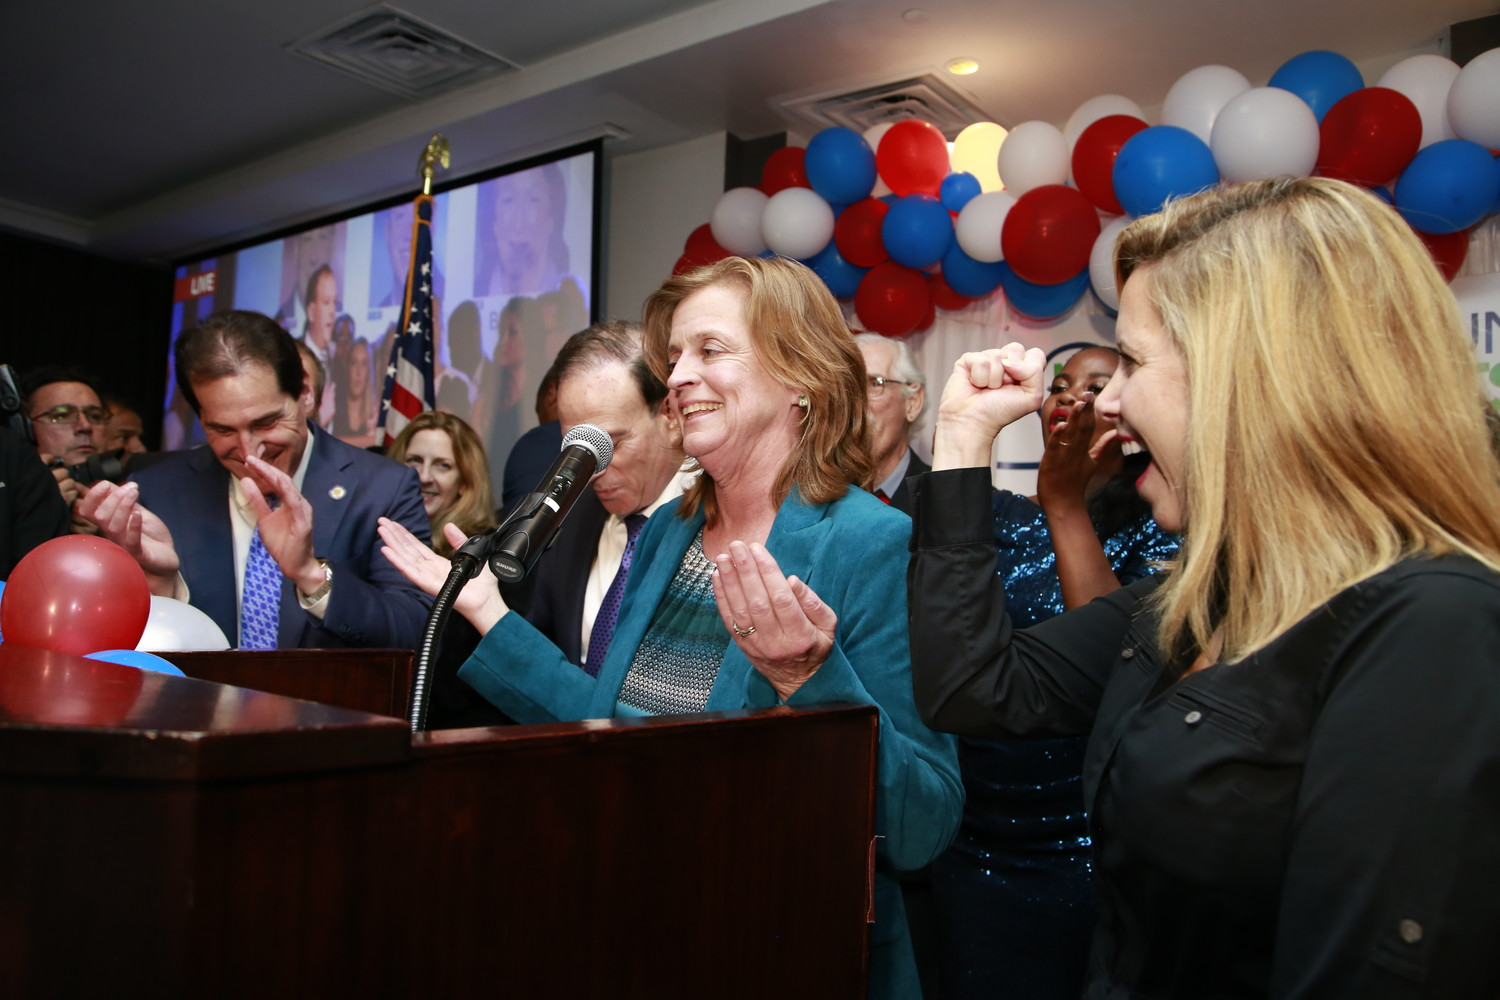 Democrat Judy Griffin, of Rockville Centre, unseated incumbent Brian Curran in the 21st Assembly District.